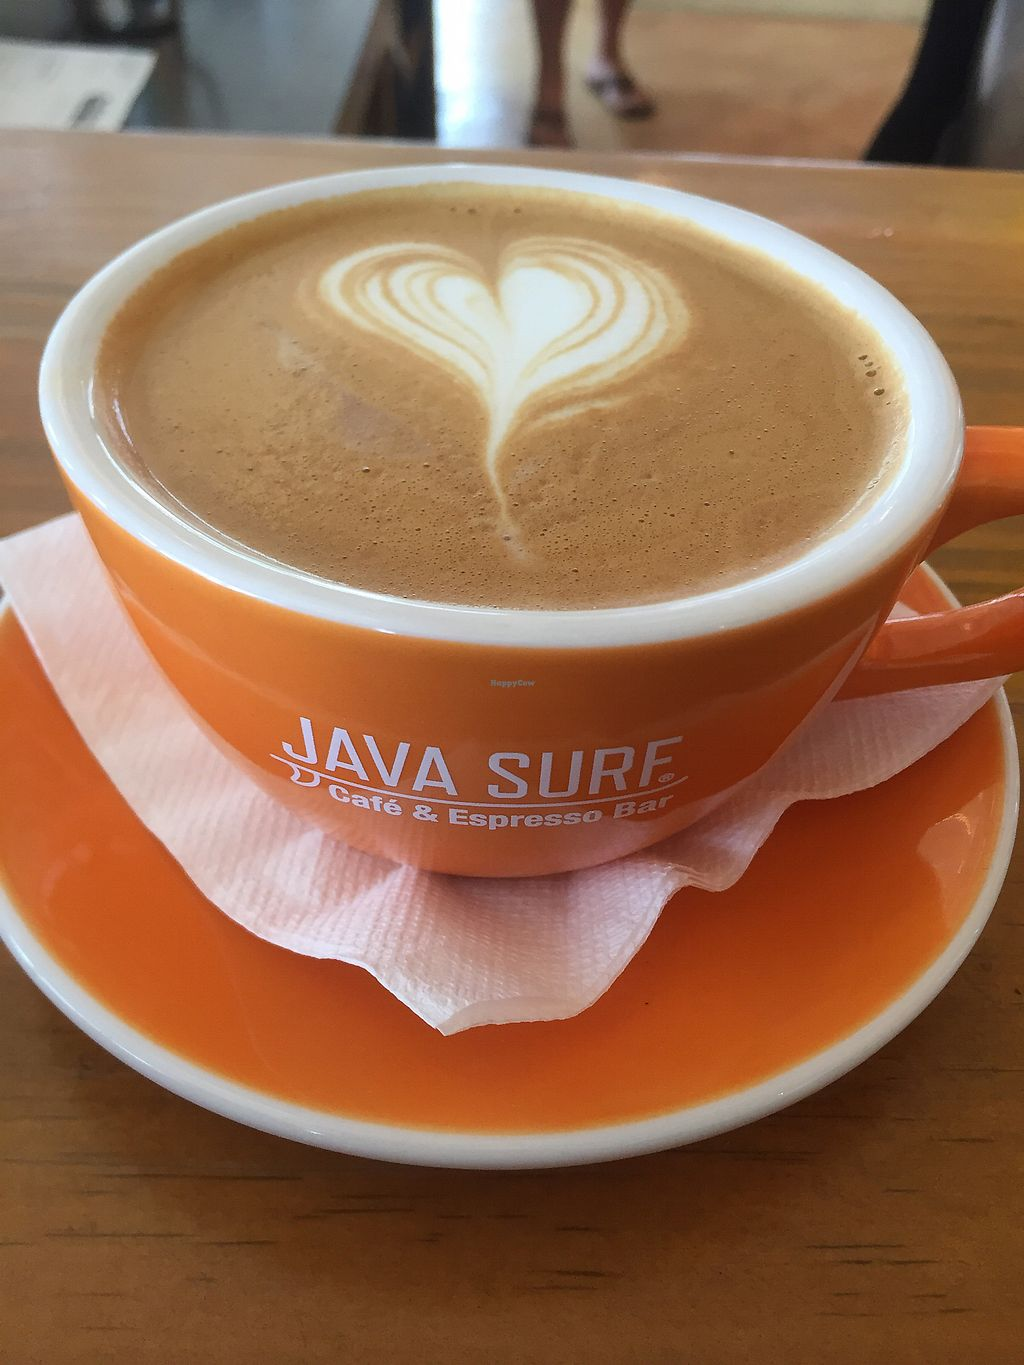 """Photo of Java Surf Cafe & Espresso Bar  by <a href=""""/members/profile/Shawna_01"""">Shawna_01</a> <br/>Caffeinated  <br/> September 2, 2017  - <a href='/contact/abuse/image/99560/300035'>Report</a>"""